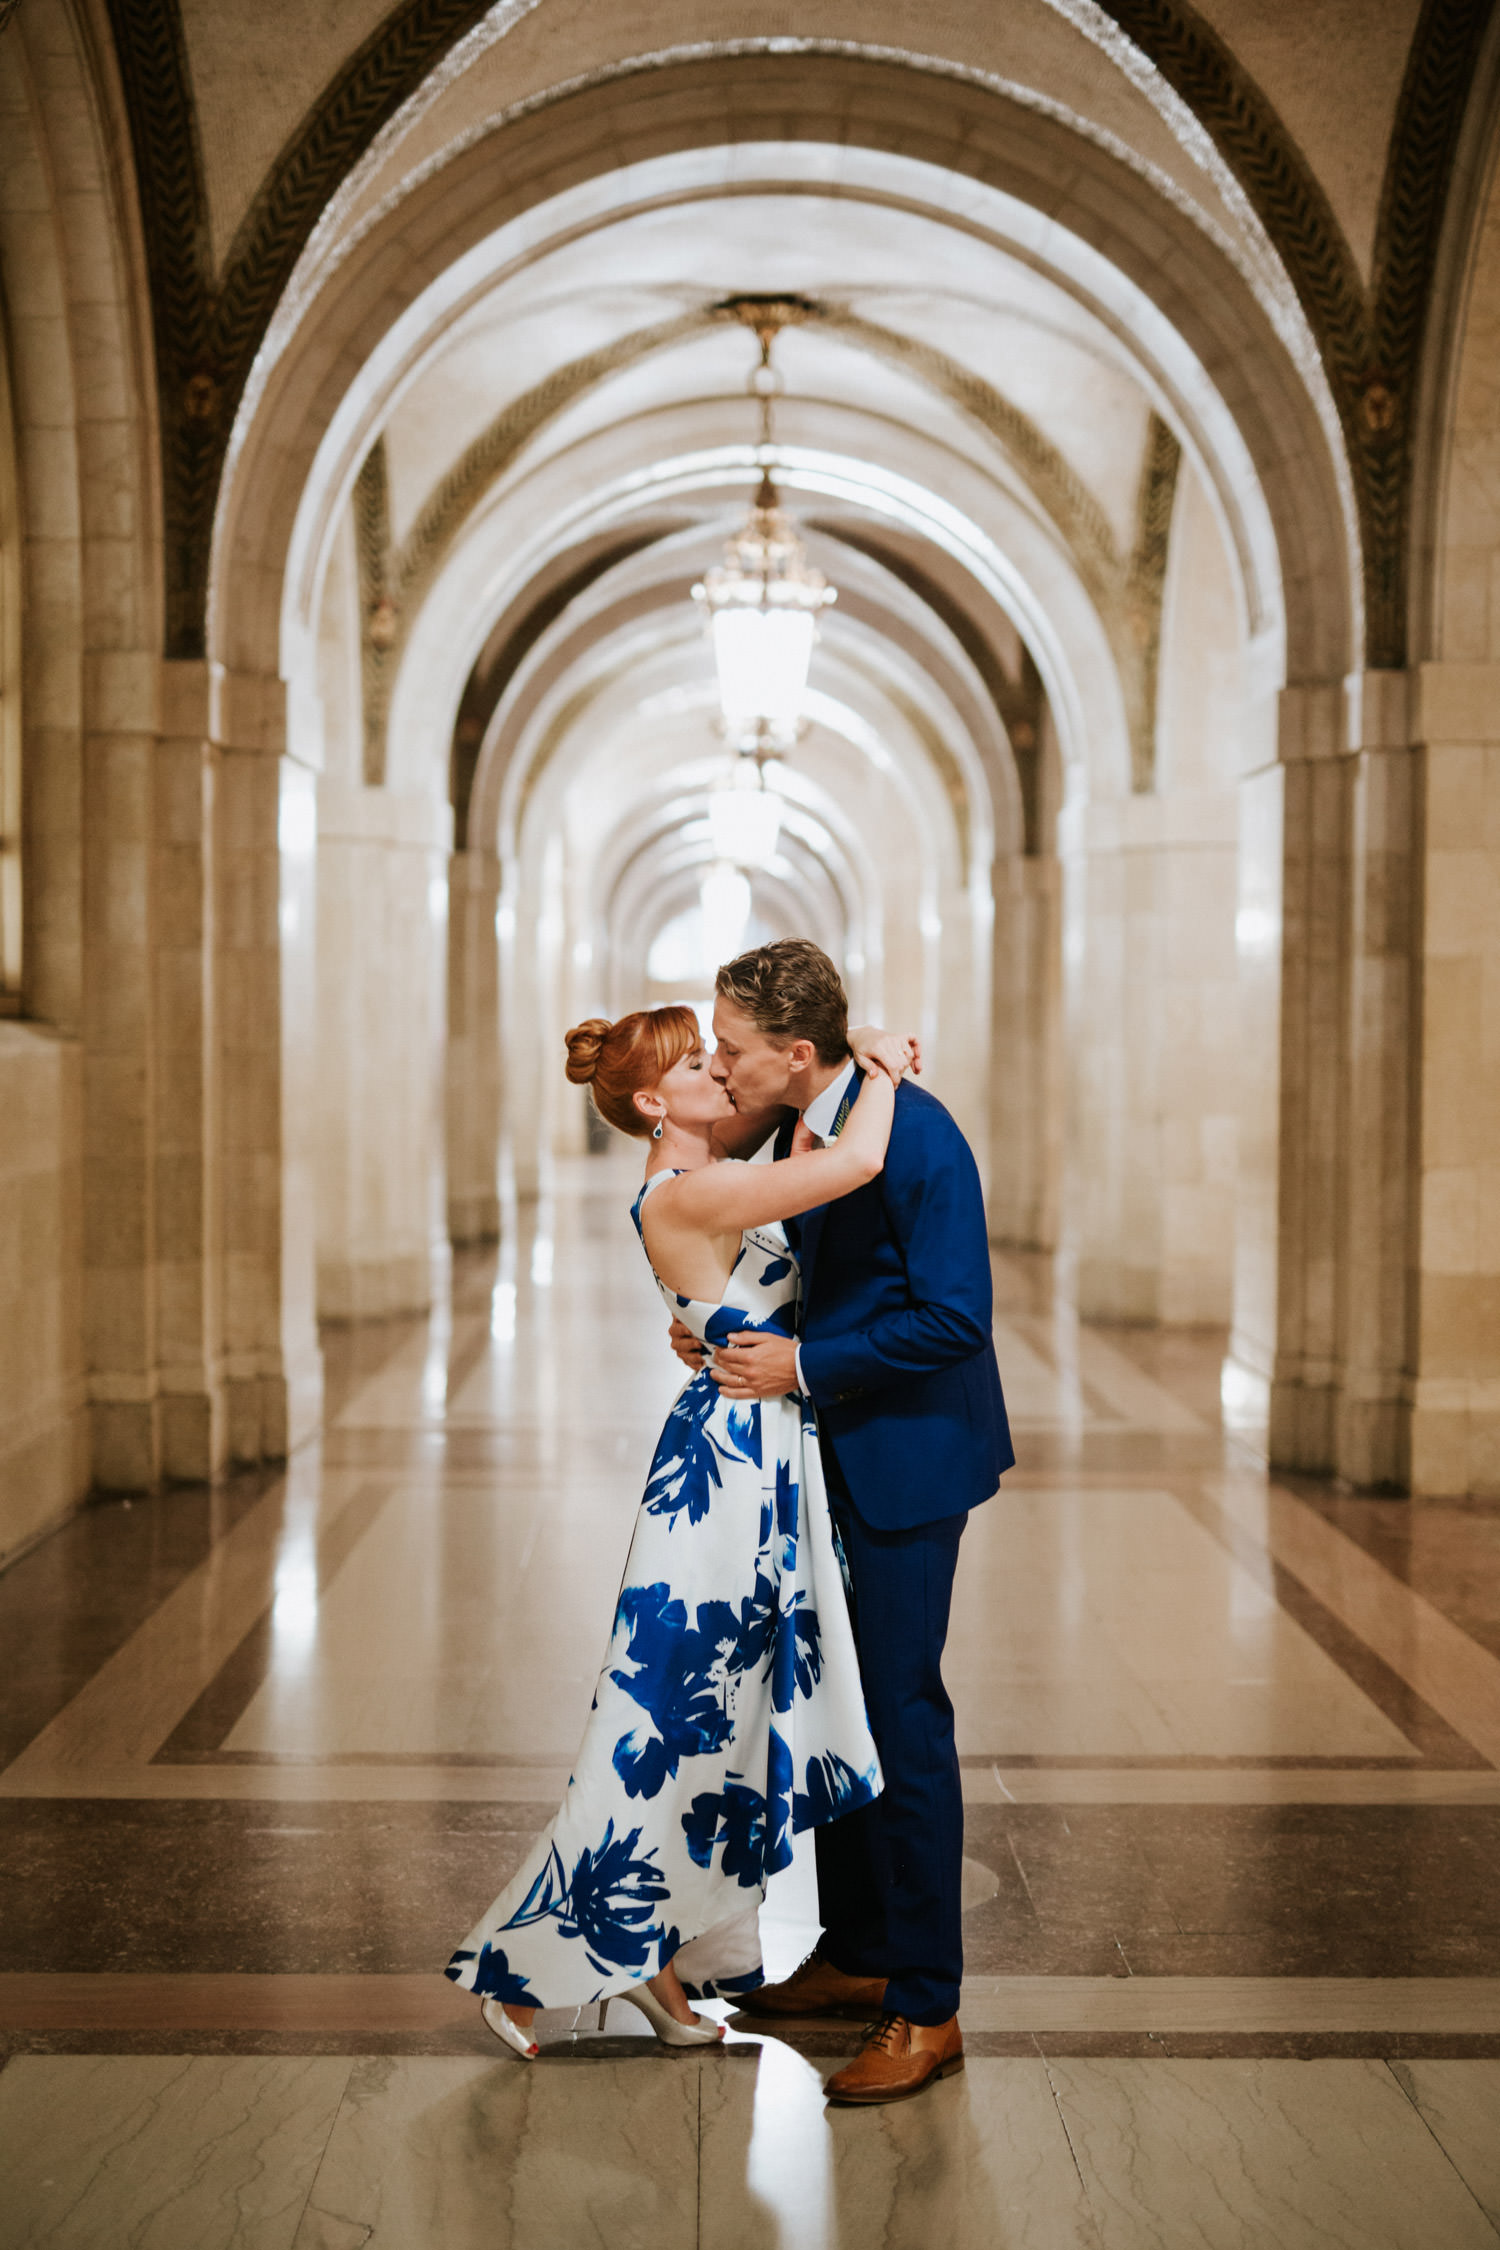 creative portrait of the bride and groom taken at Civil Court in Chicago downtown